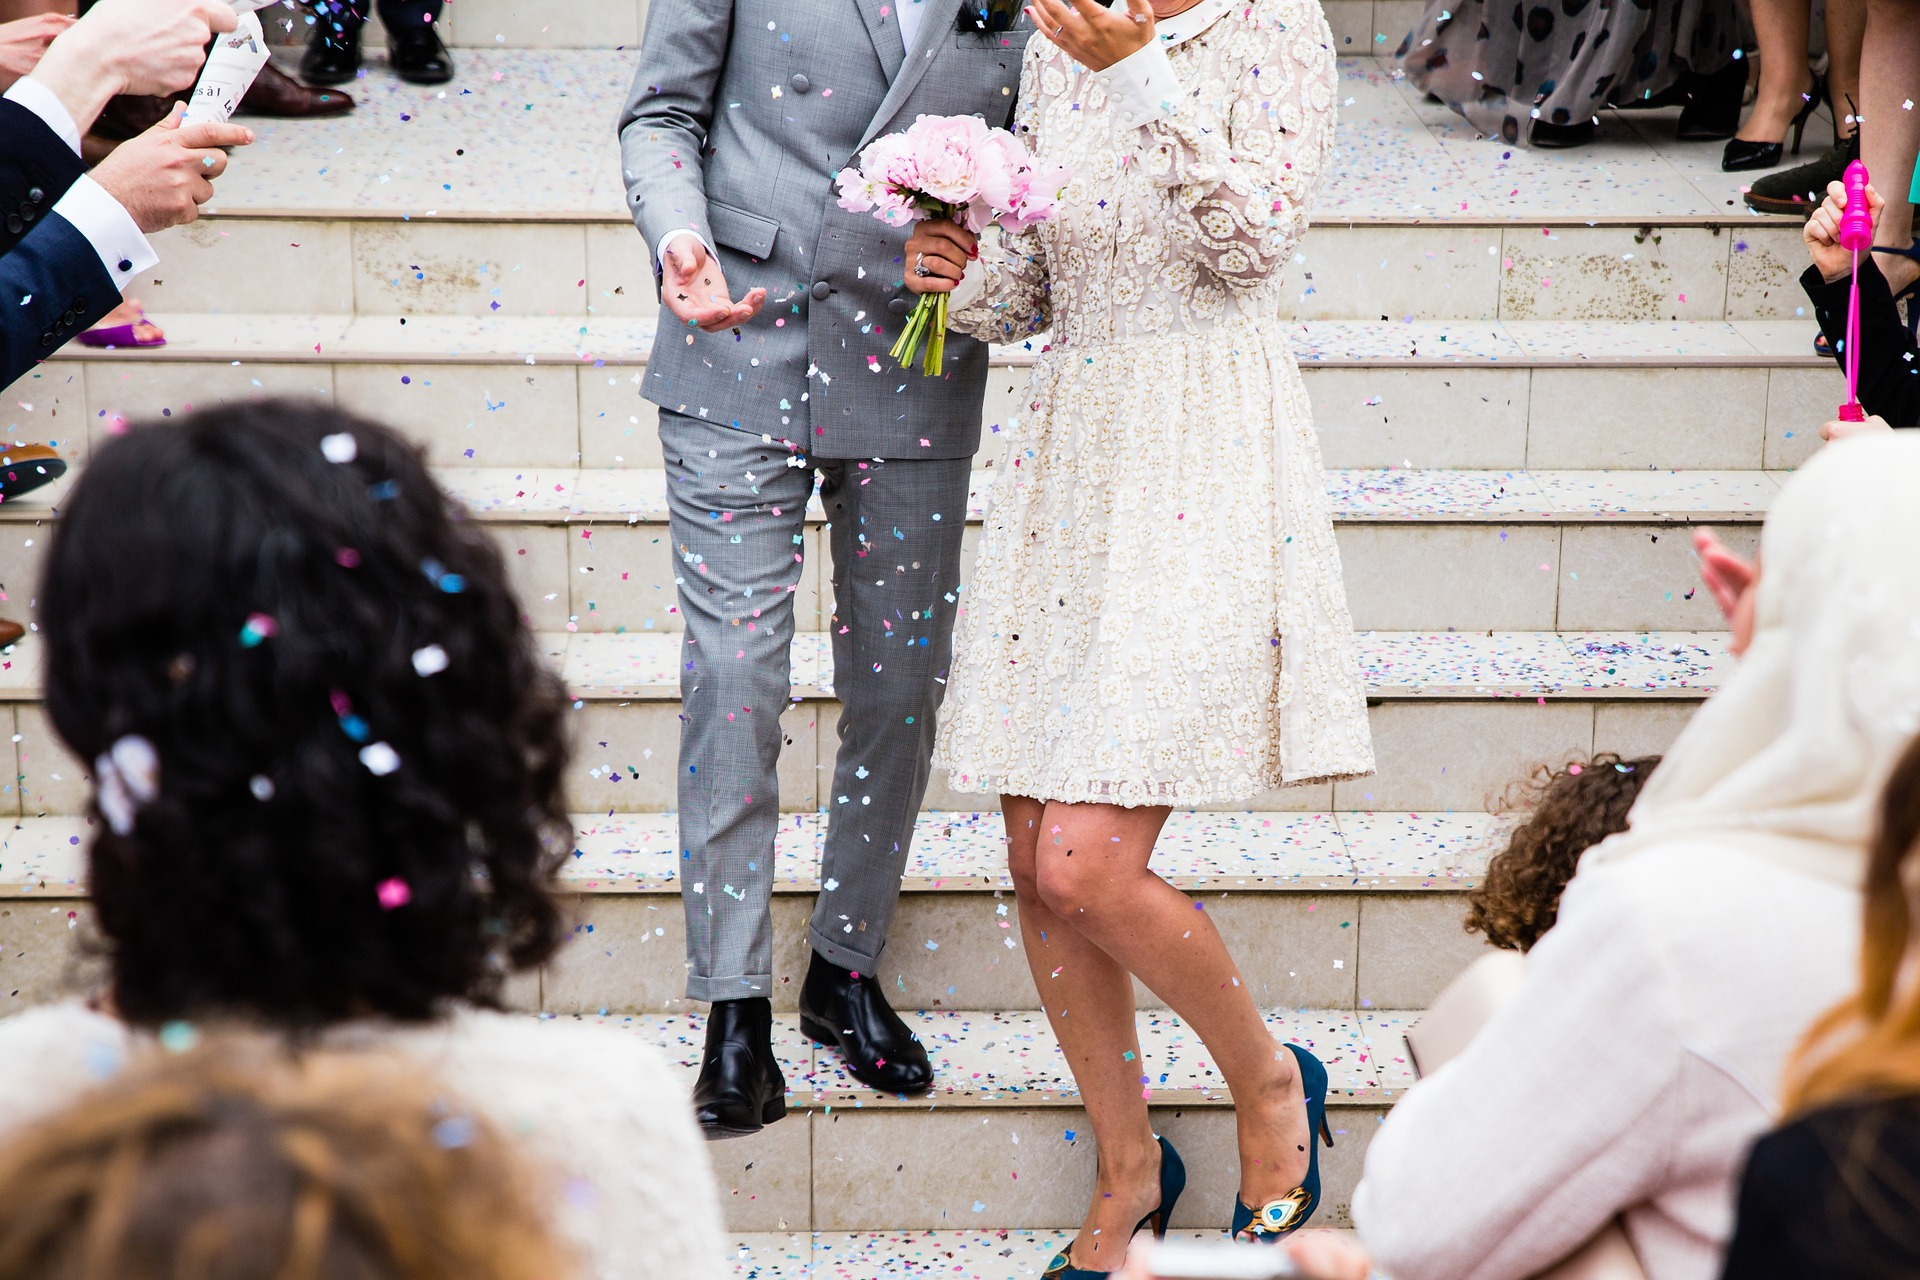 Modern Wedding Guest Etiquette Rules - Do You Have To Attend The Whole Wedding